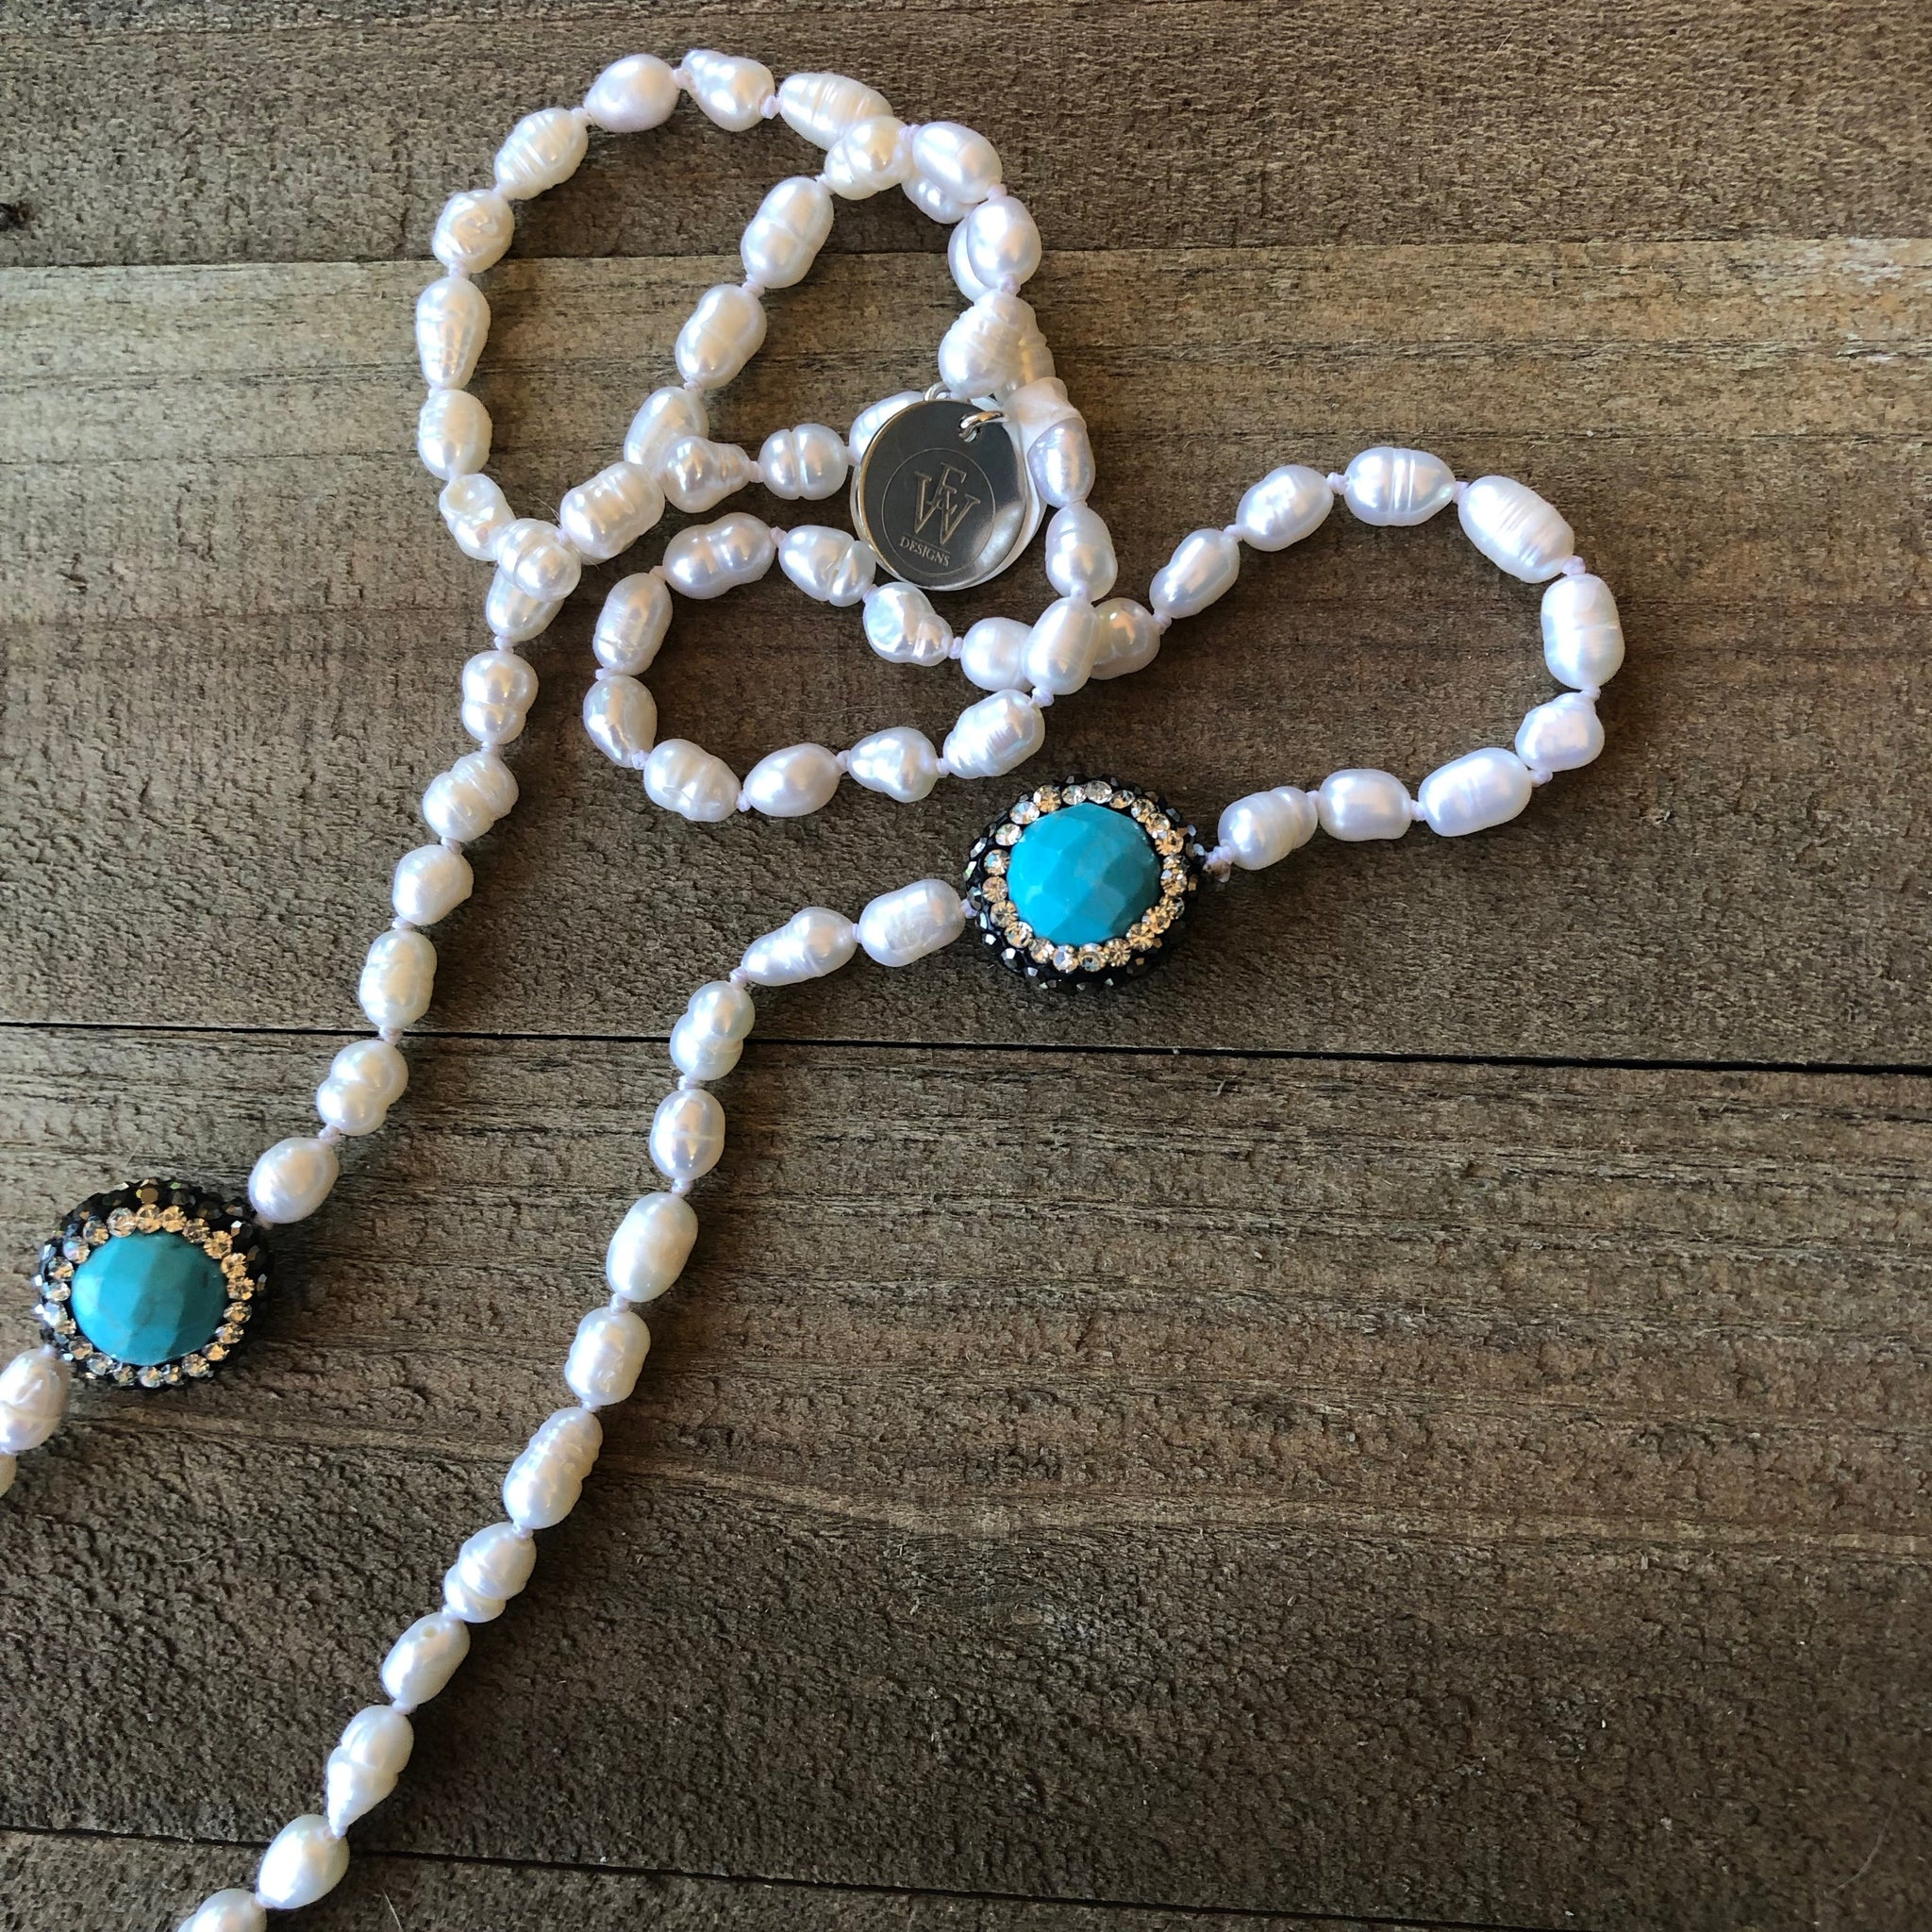 Hand Knotted Fresh Water Pearls Strand with Turquoise and Pave Crystal Beads